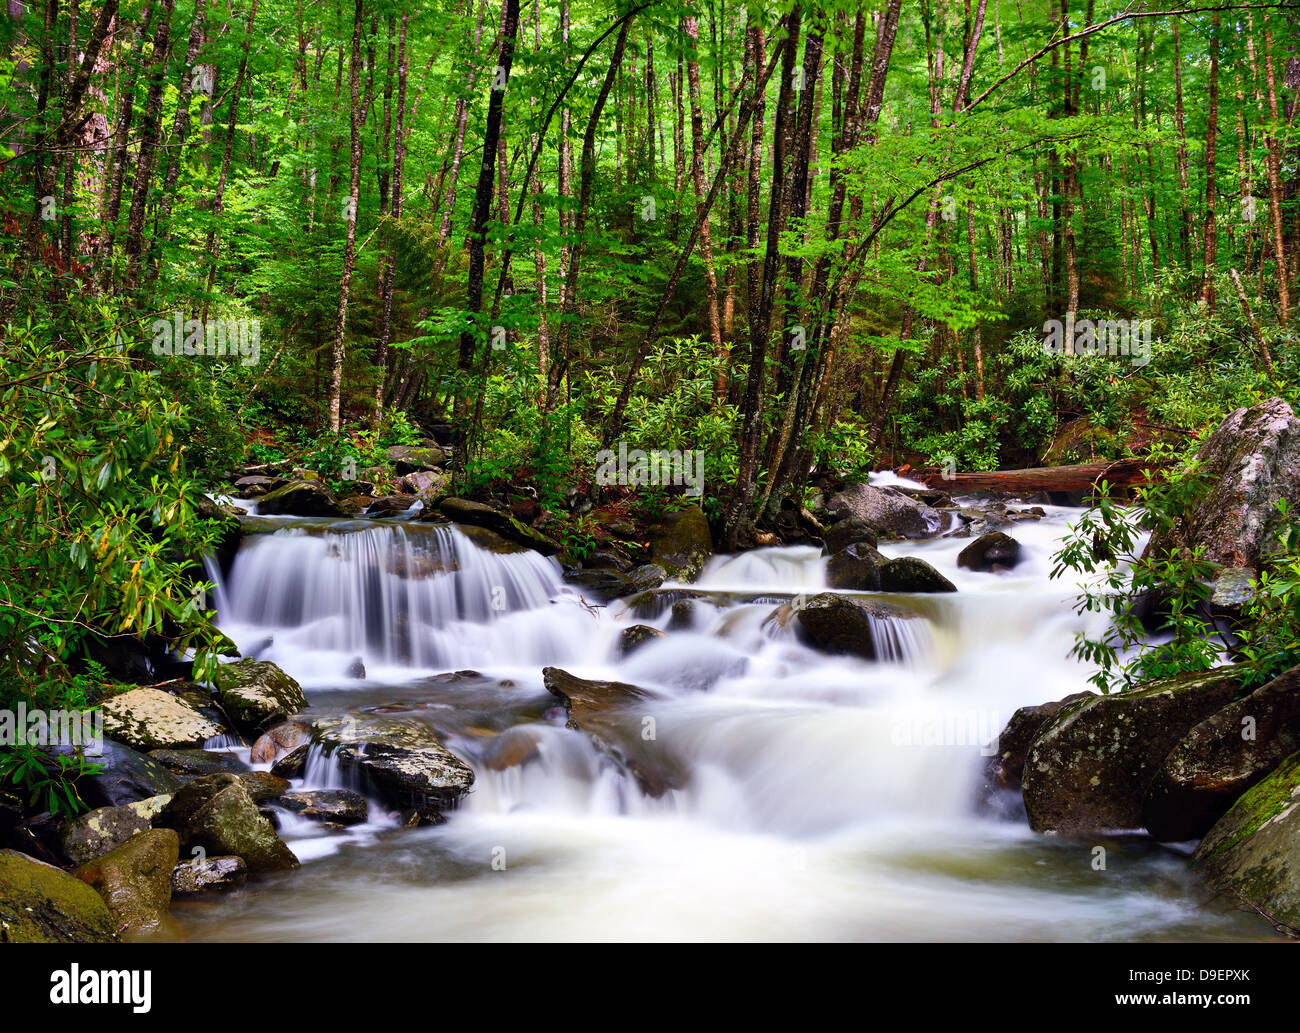 cascades in the Smoky Mountains of Tennessee, USA. - Stock Image